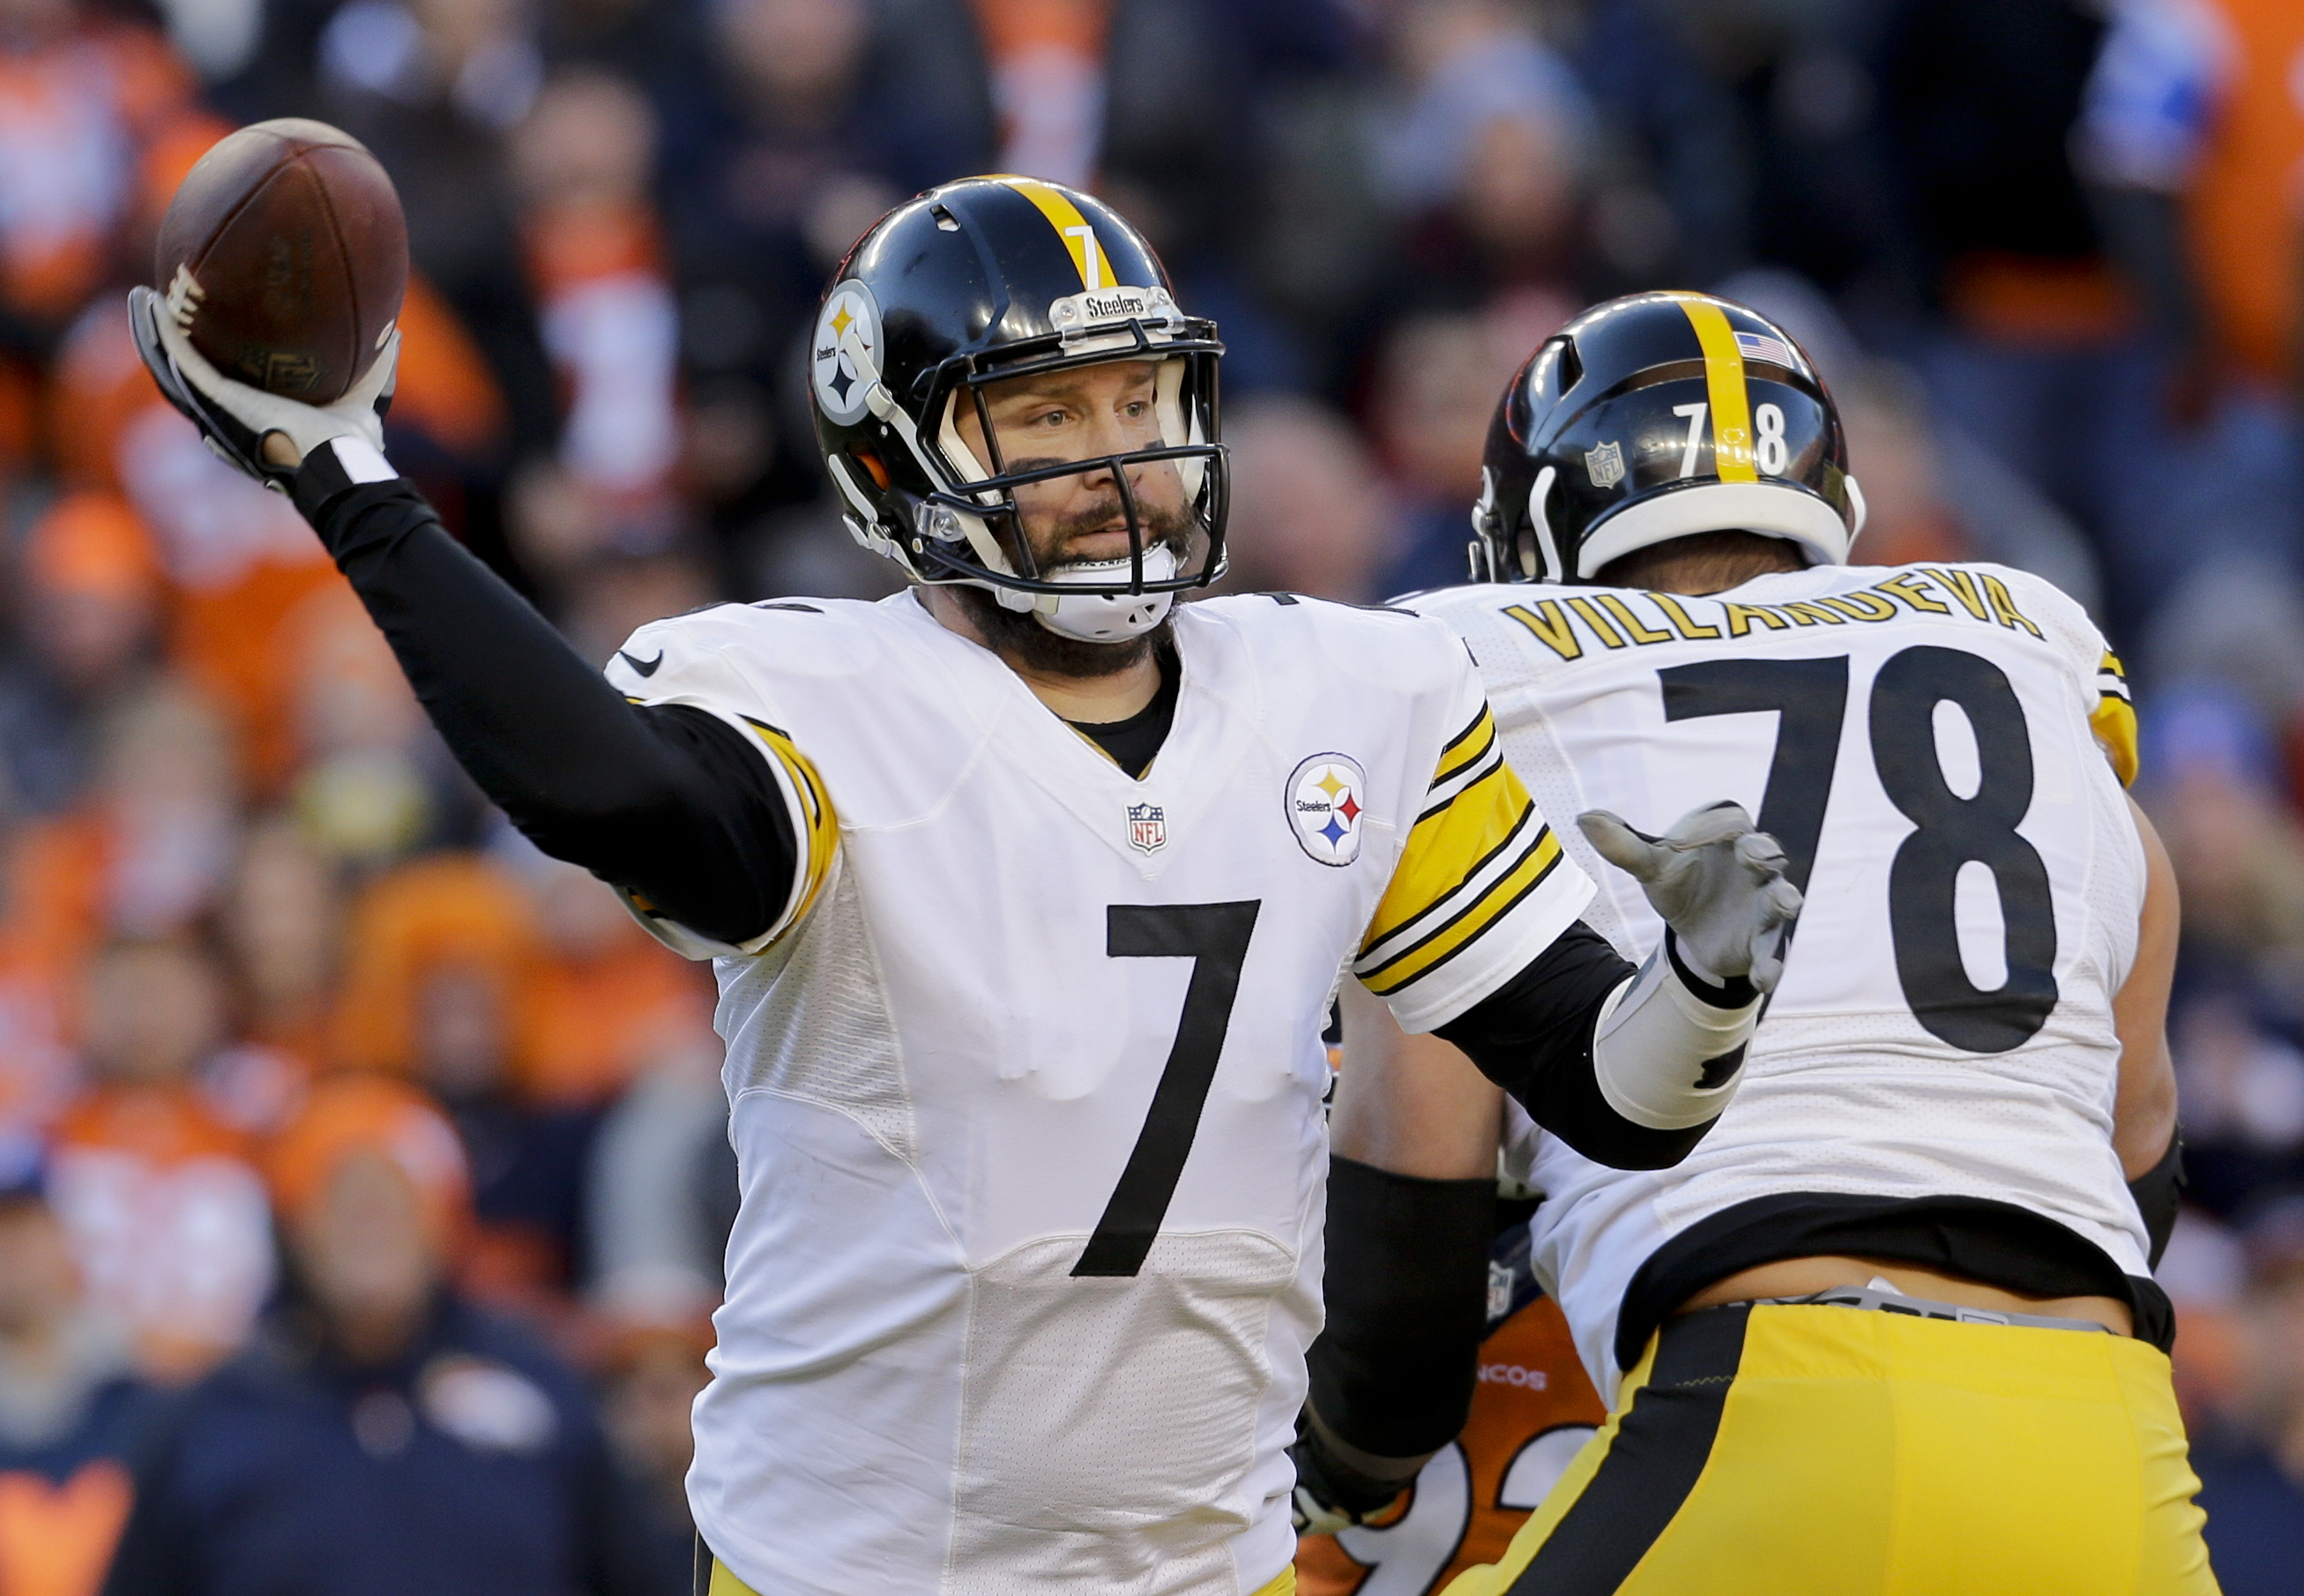 Pittsburgh Steelers quarterback Ben Roethlisberger passes against the Denver Broncos during the first half in an NFL football divisional playoff game, Sunday, Jan. 17, 2016, in Denver. (AP Photo/Joe Mahoney)